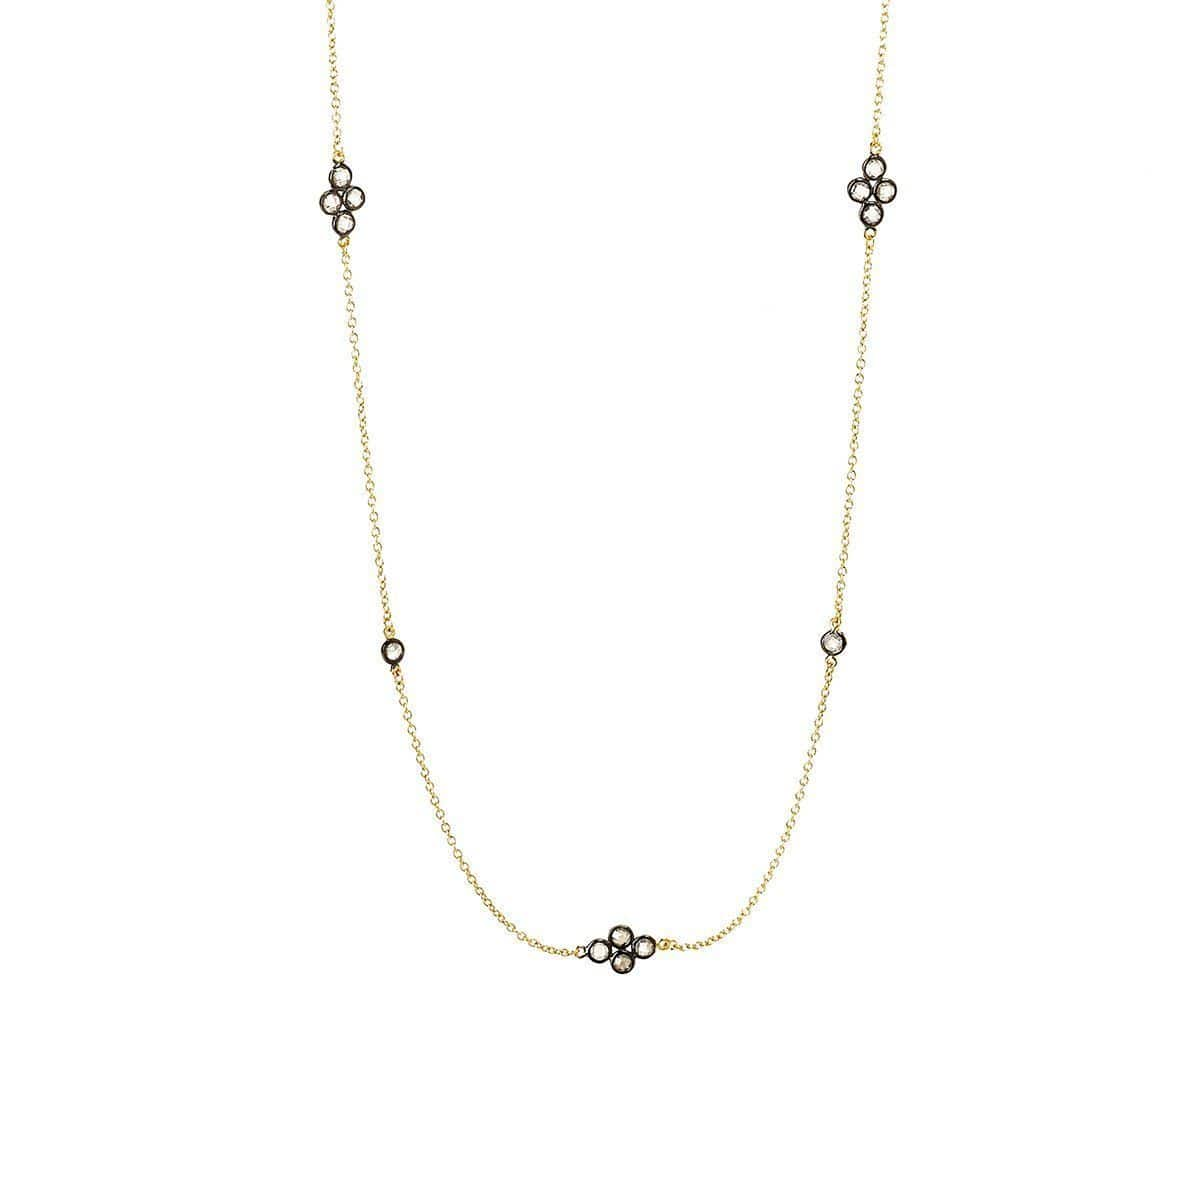 Signature Four Point Station Necklace - YRZ070055-40-Freida Rothman-Renee Taylor Gallery